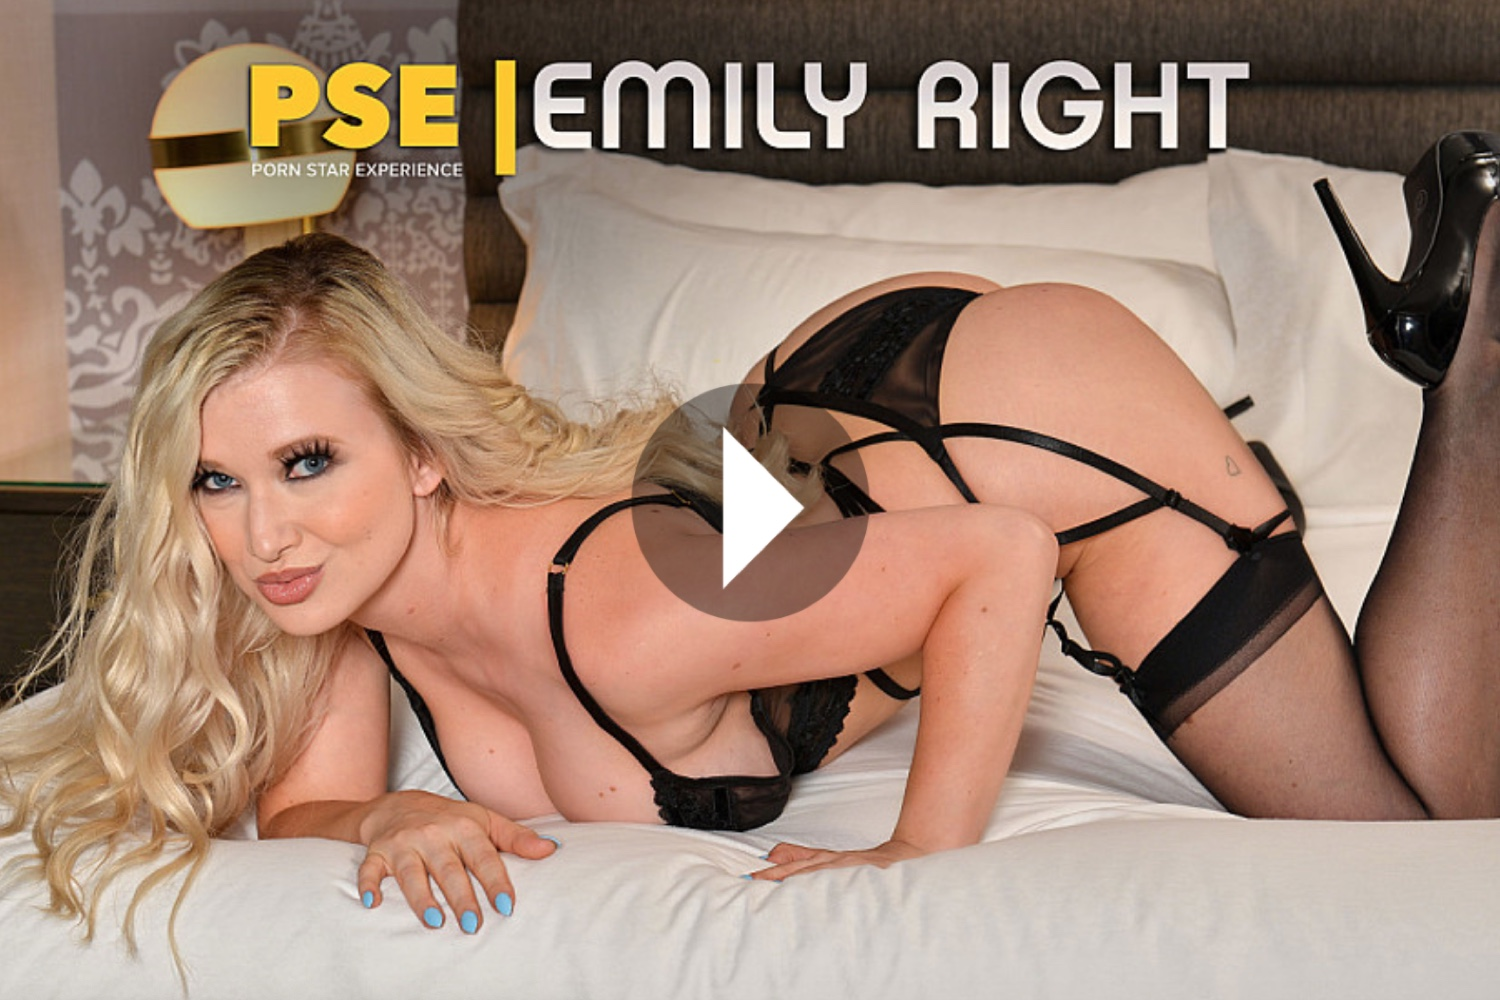 Emily Right PSE - Emily Right Porn Star Experience - Emily Right VR Porn - Emily Right Virtual Reality Porn - Emily Right Stockings